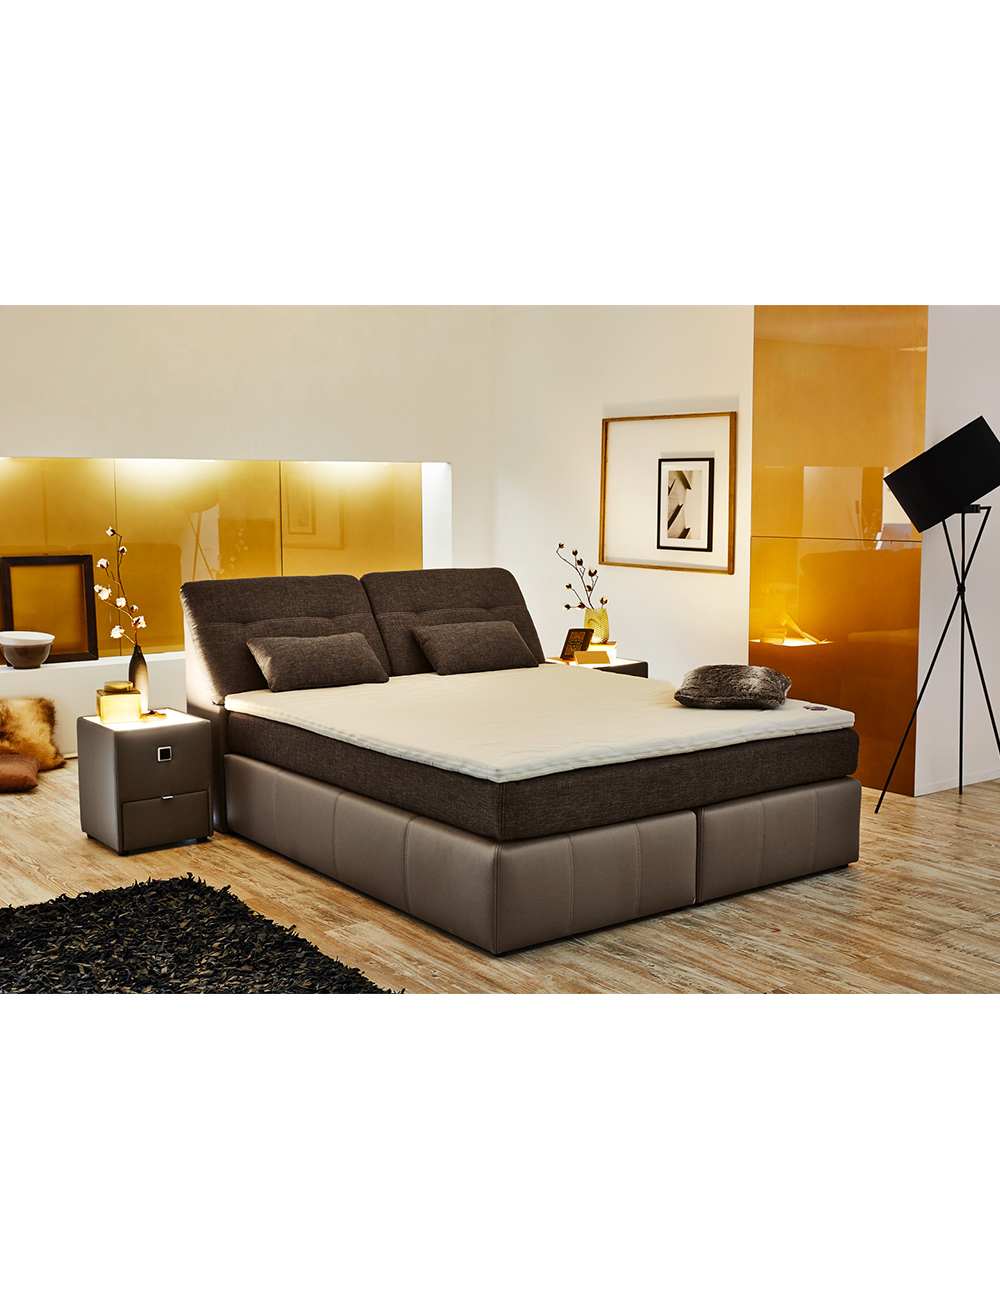 boxspring bett palace 180 x 200 cm. Black Bedroom Furniture Sets. Home Design Ideas